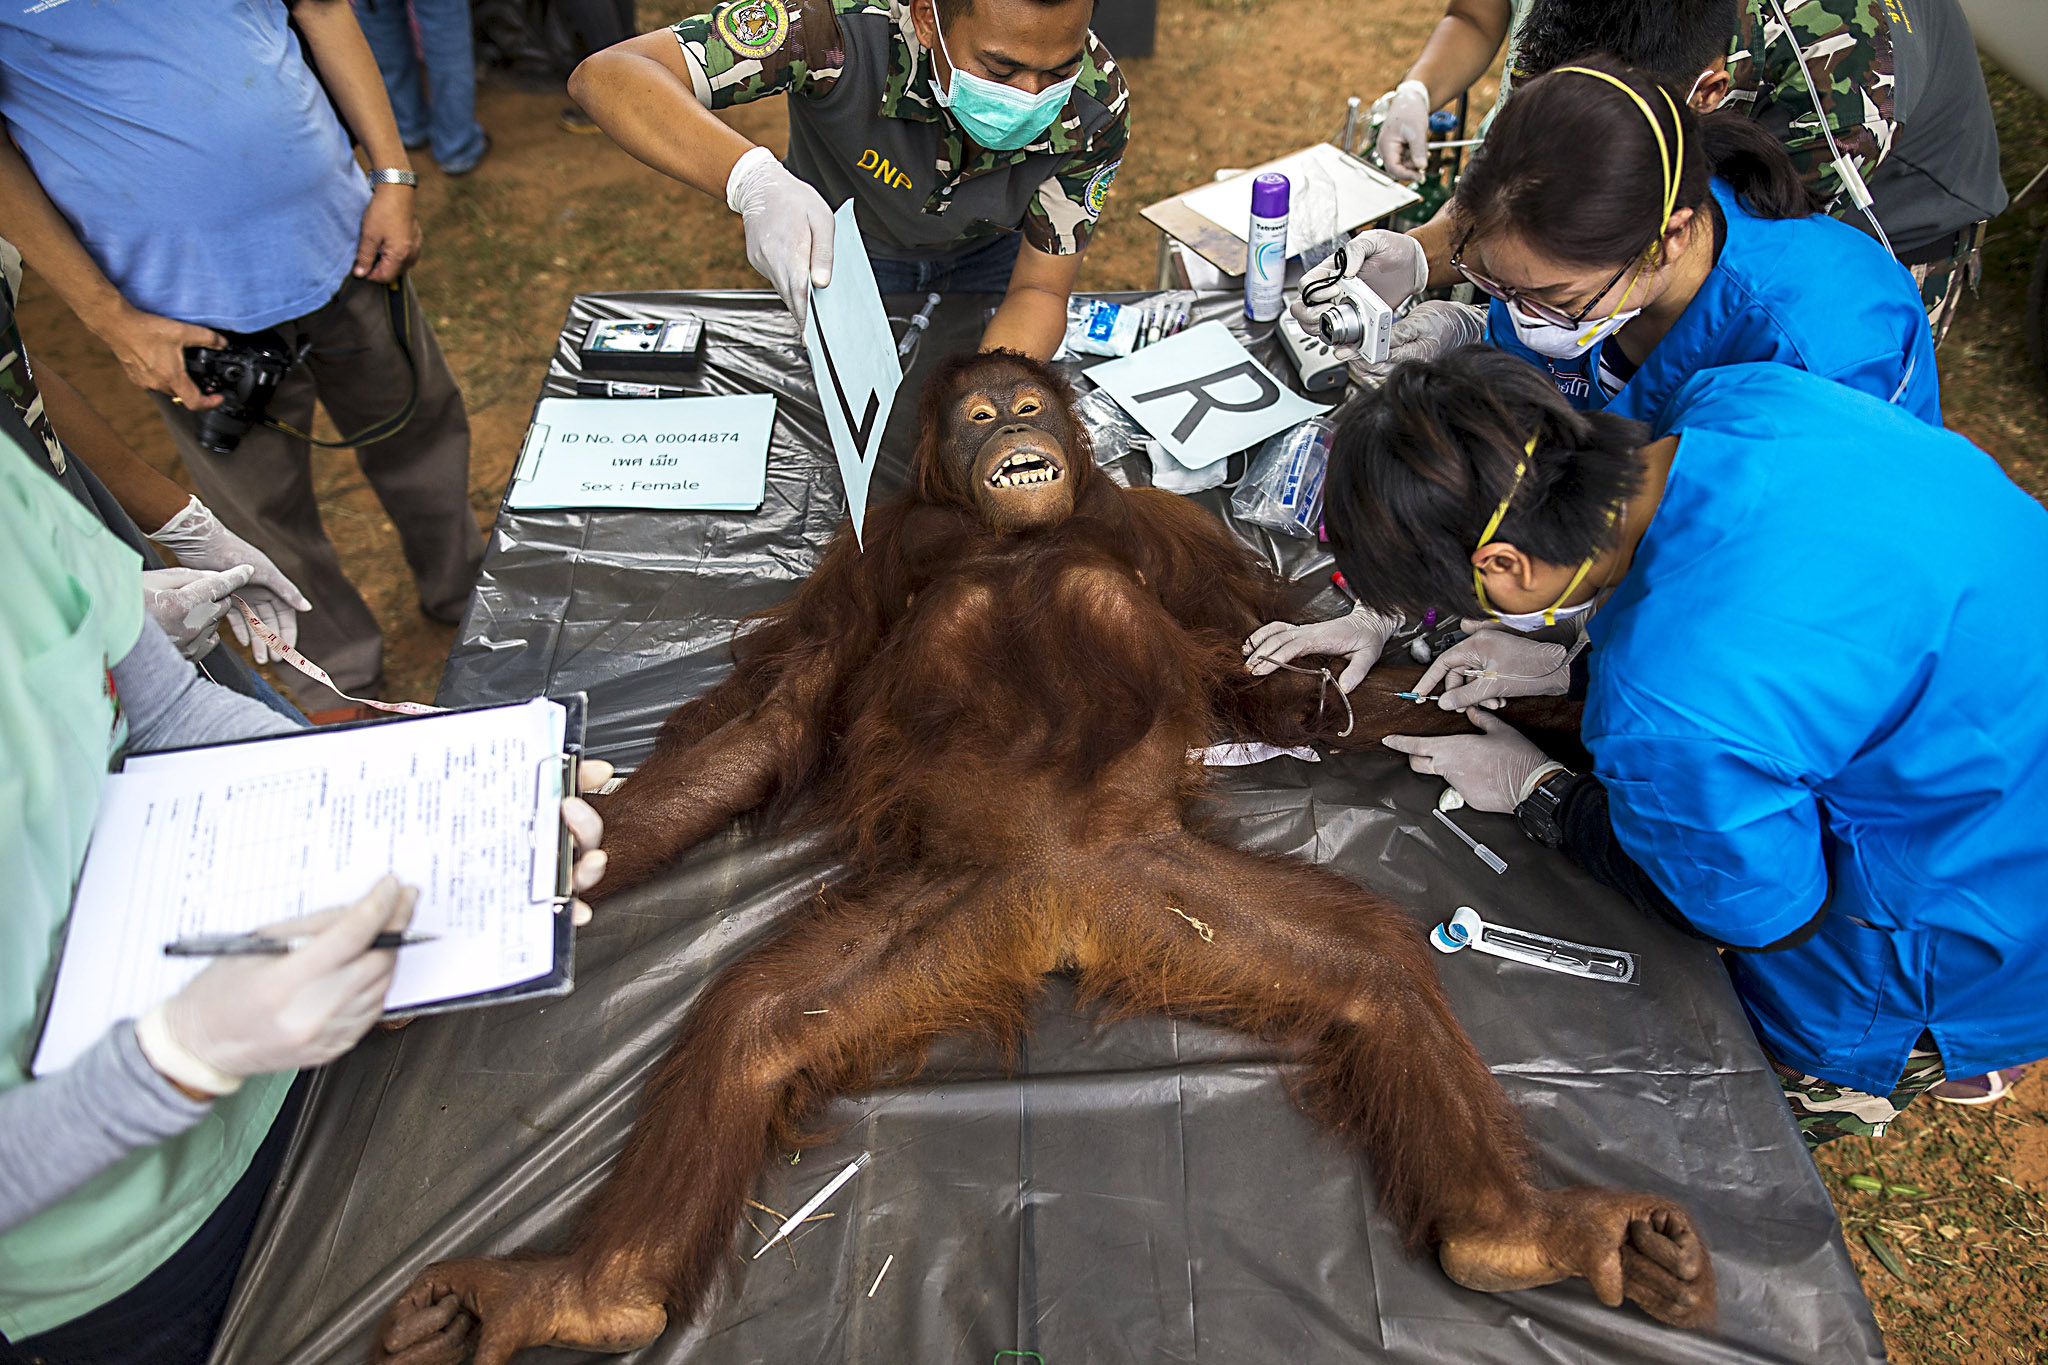 Thai veterinarians and wildlife officers collect blood sample during a health examination at Kao Pratubchang Conservation Centre in Ratchaburi...Thai veterinarians and wildlife officers collect blood sample during a health examination at Kao Pratubchang Conservation Centre in Ratchaburi, Thailand, August 27, 2015. Thai veterinarians from the Department of National Park Wildlife, and Plant Conservation conducted a health check of 14 orangutans for preparation for the repatriation to their country of origin, Indonesia. Most of Sumatran and Borneo Kalimantan orangutans, were confiscated from entertainment businesses in Phuket province since 2008. Authorities said the orangutans are being examined to ensure they are free from diseases such as Rabies, Foot and Mouth disease, Tuberculosis, Hepatitis and Herpes. Thai officials said the orangutans are expected to return to Indonesia in September. REUTERS/Athit Perawongmetha